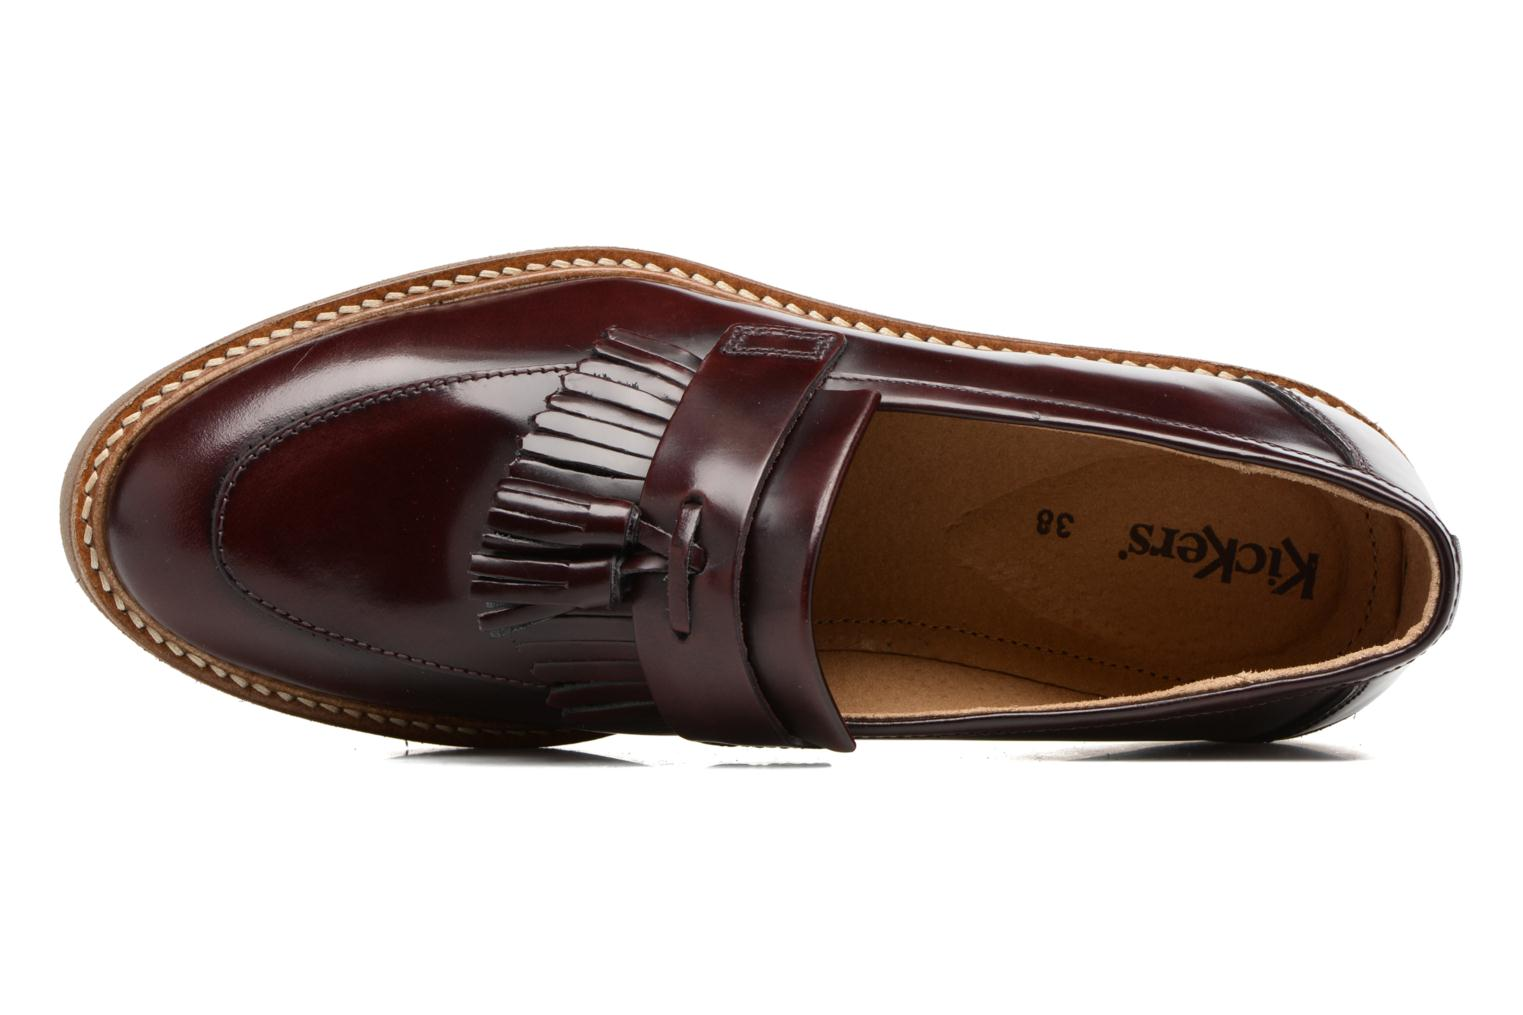 OXFOX Bordeaux